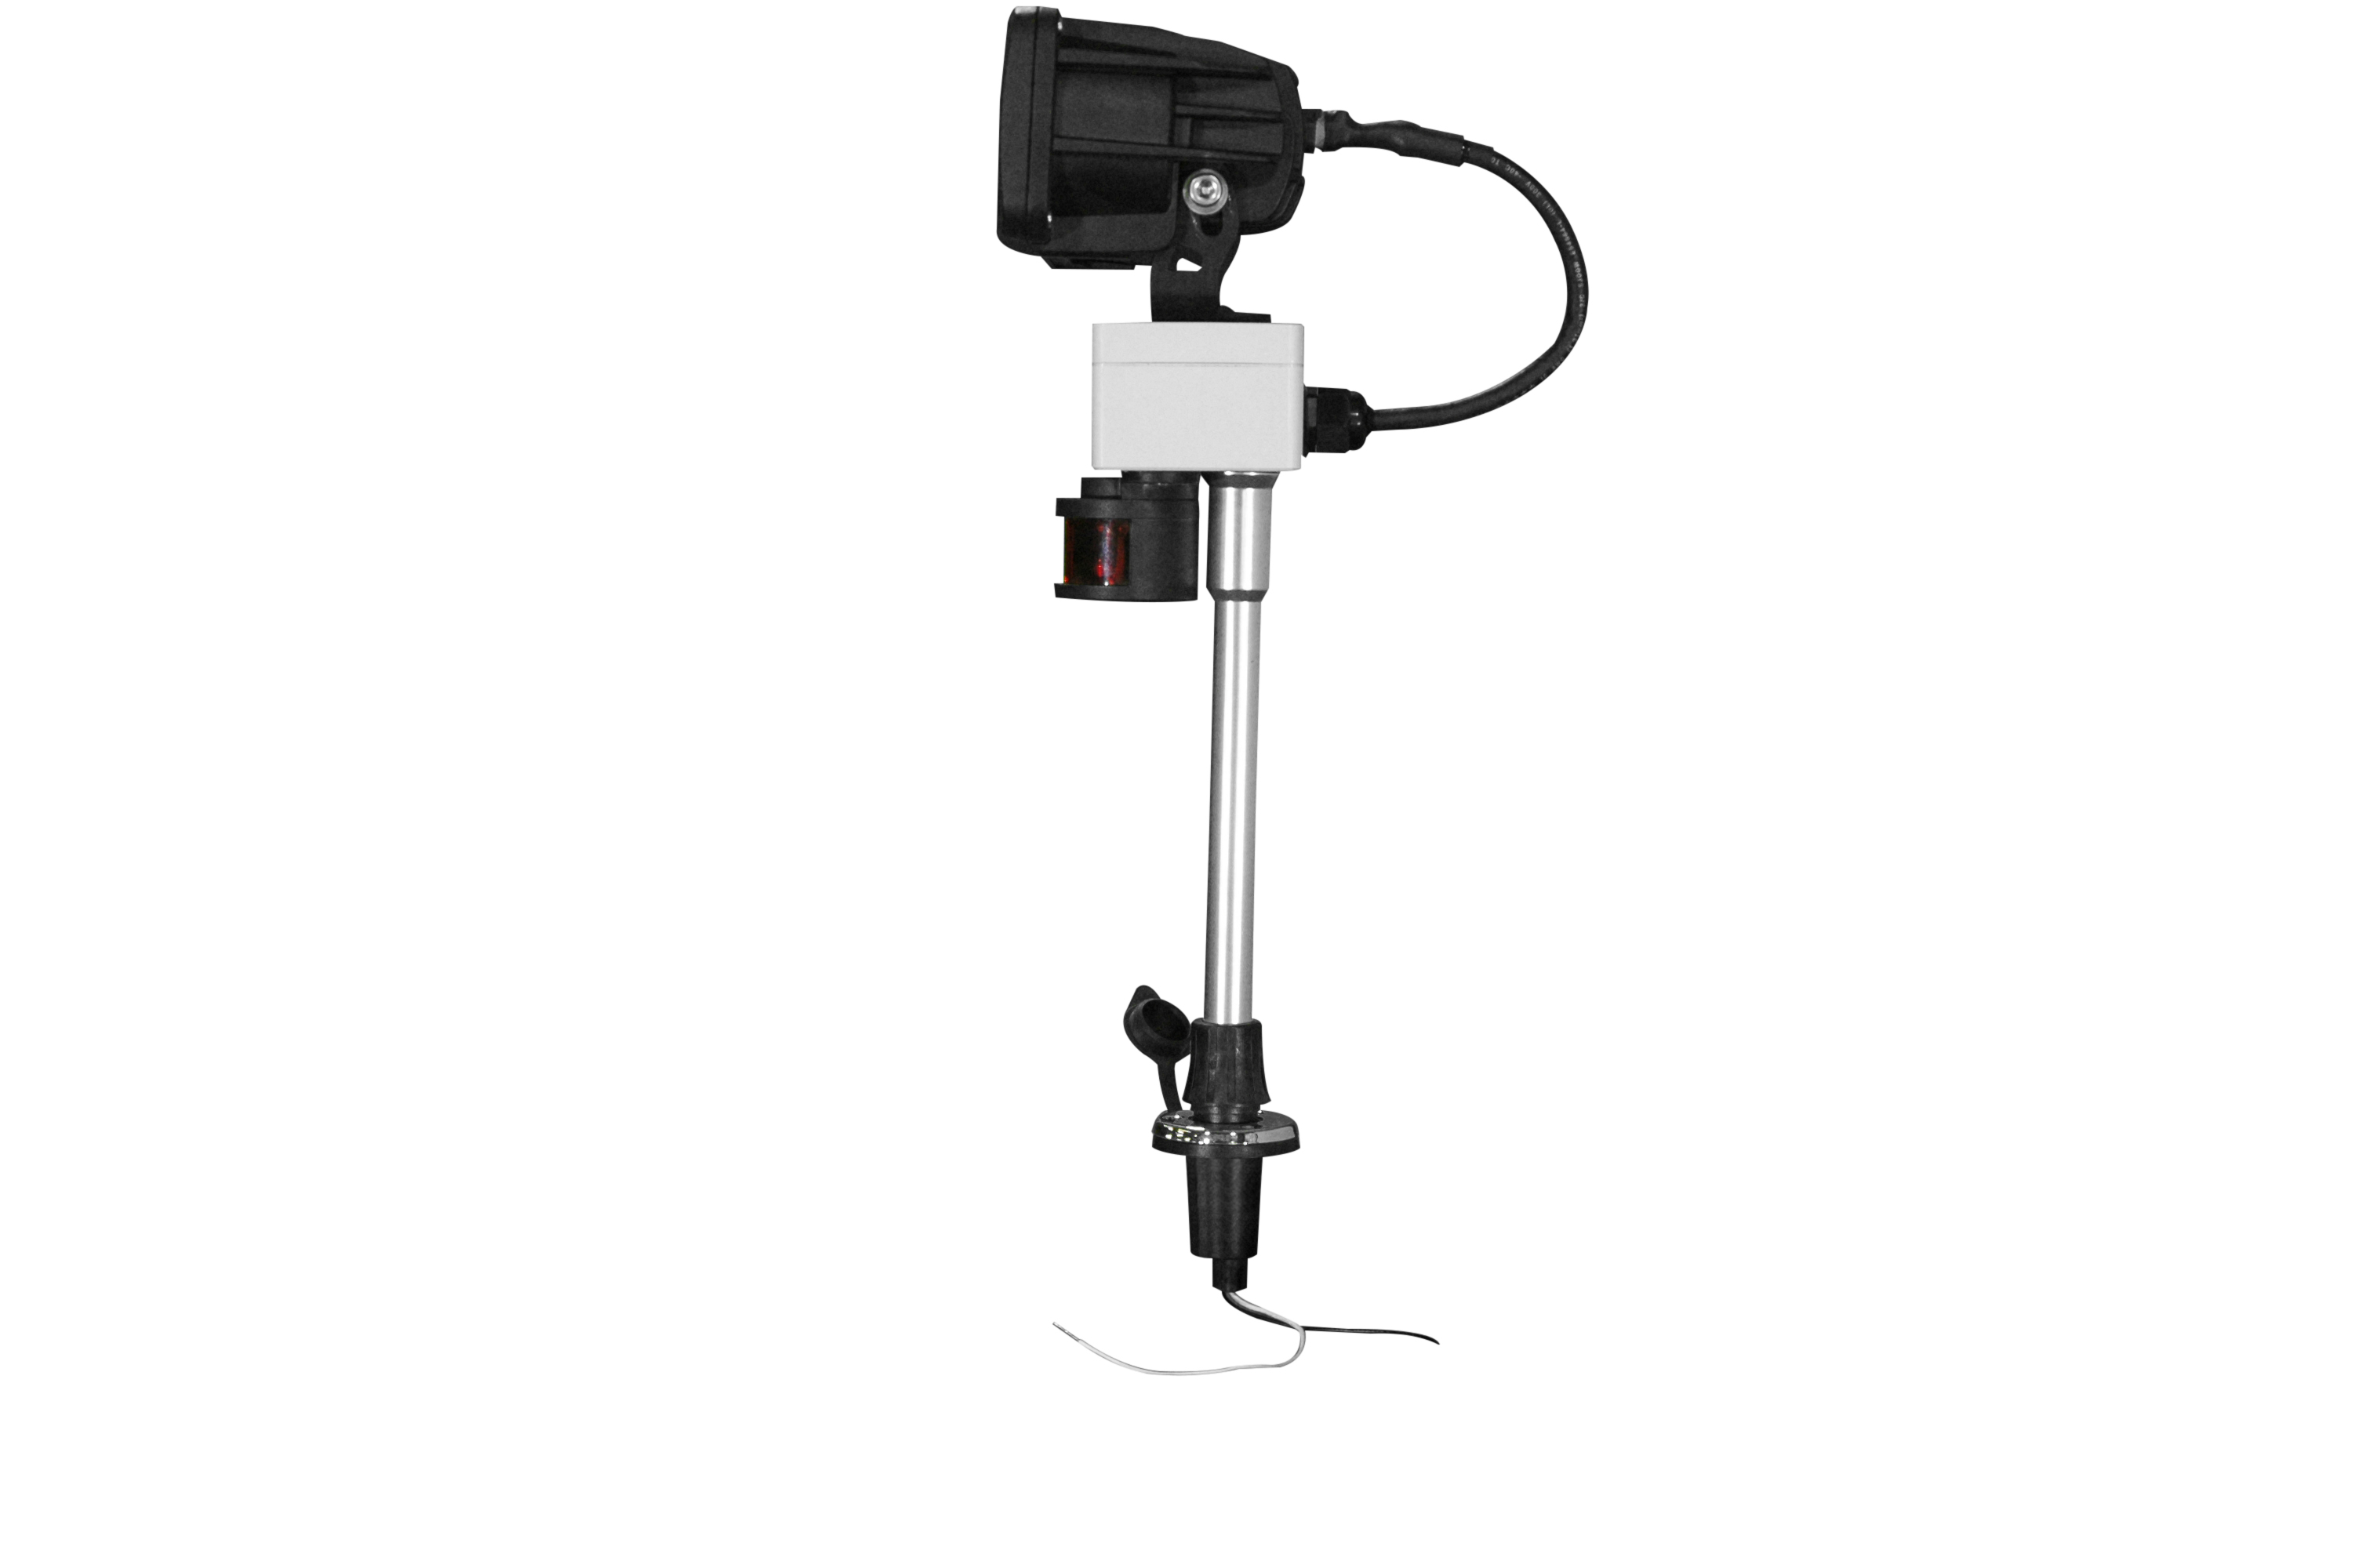 Colored Led Lights >> Larson Electronics Releases a New 20 Watt LED Boat Light with a Perko Pole Mounting System